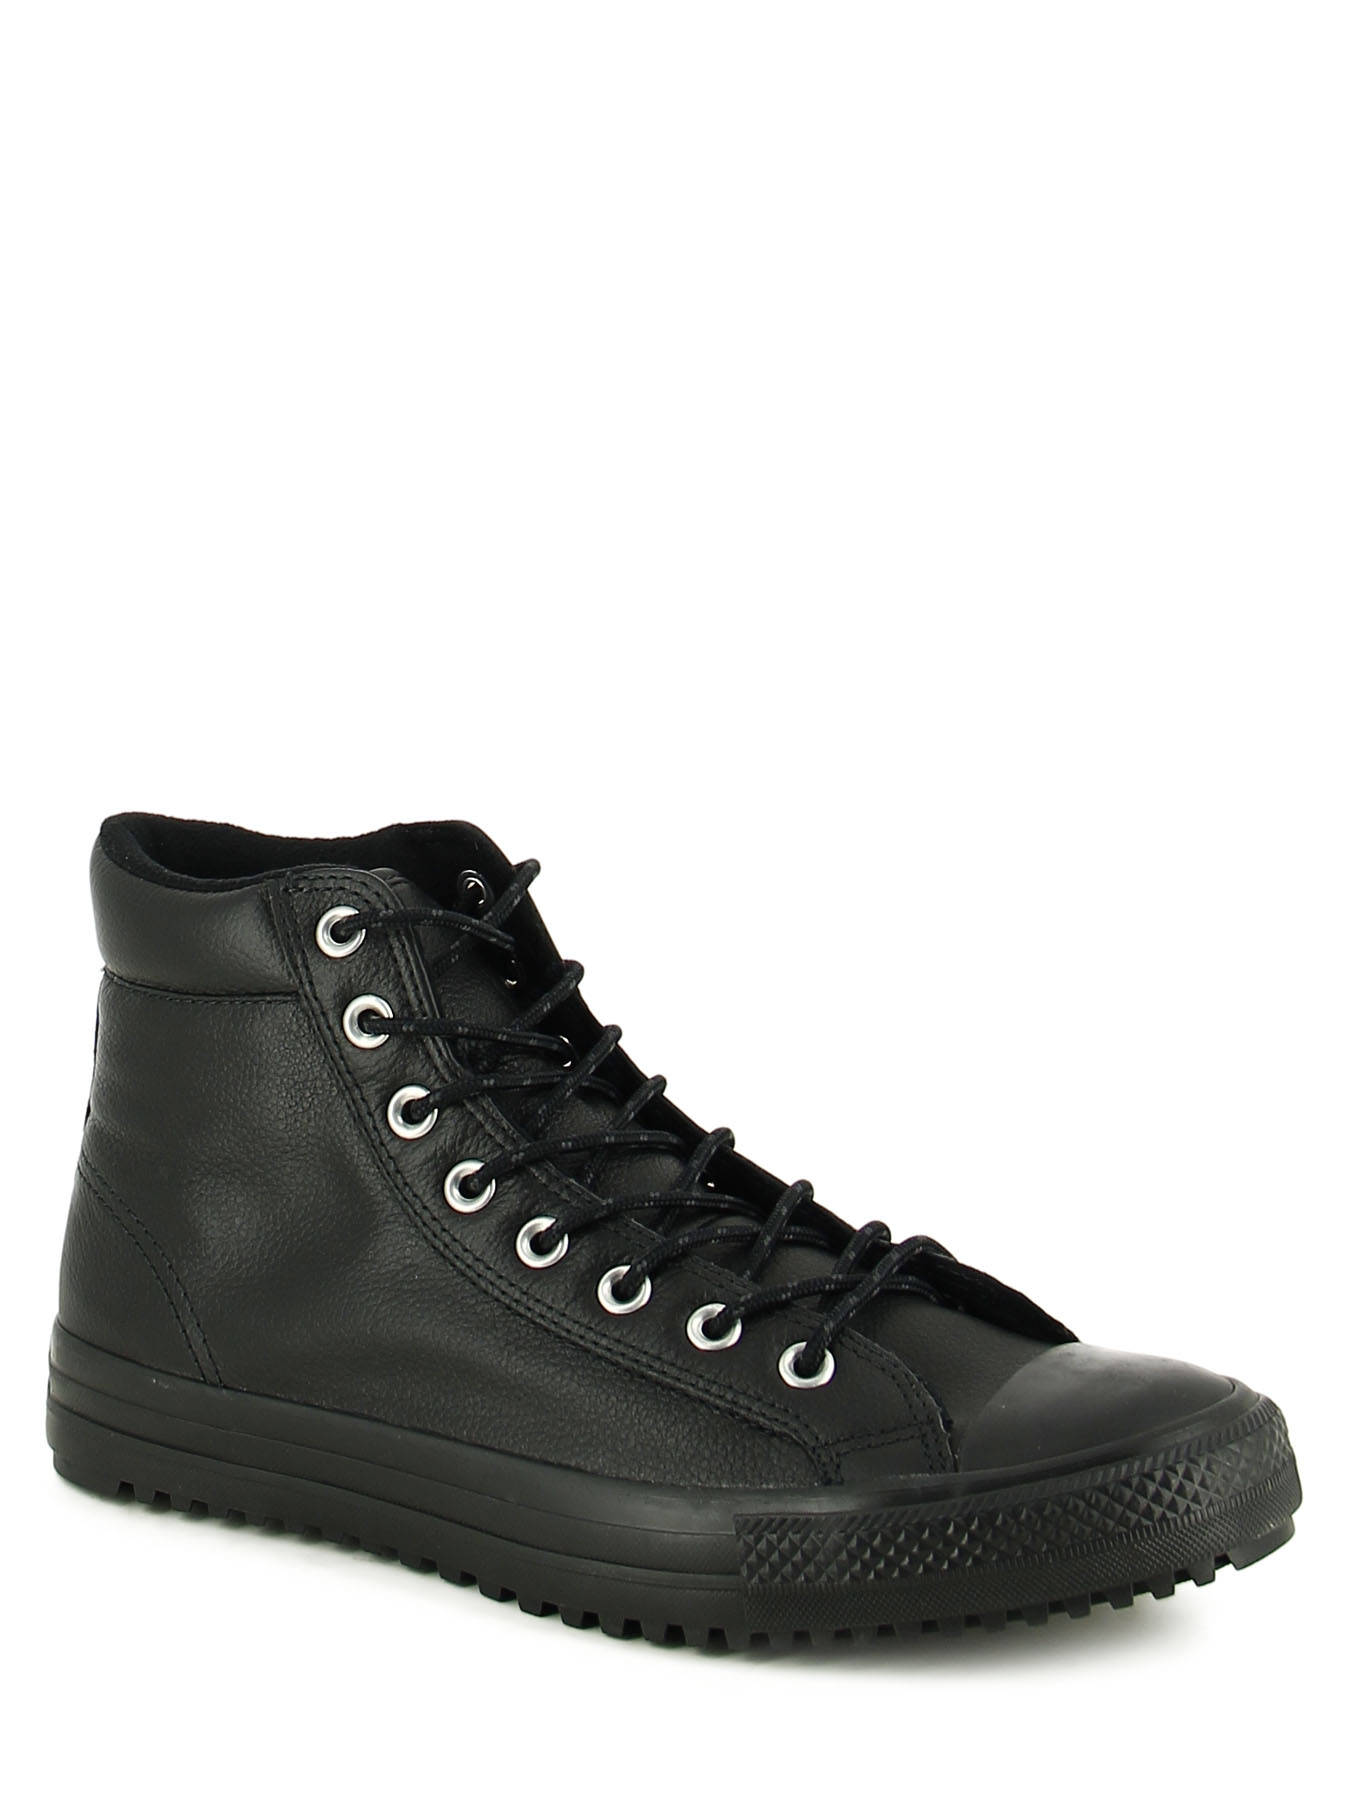 Chuck taylor all star boot PC CONVERSE